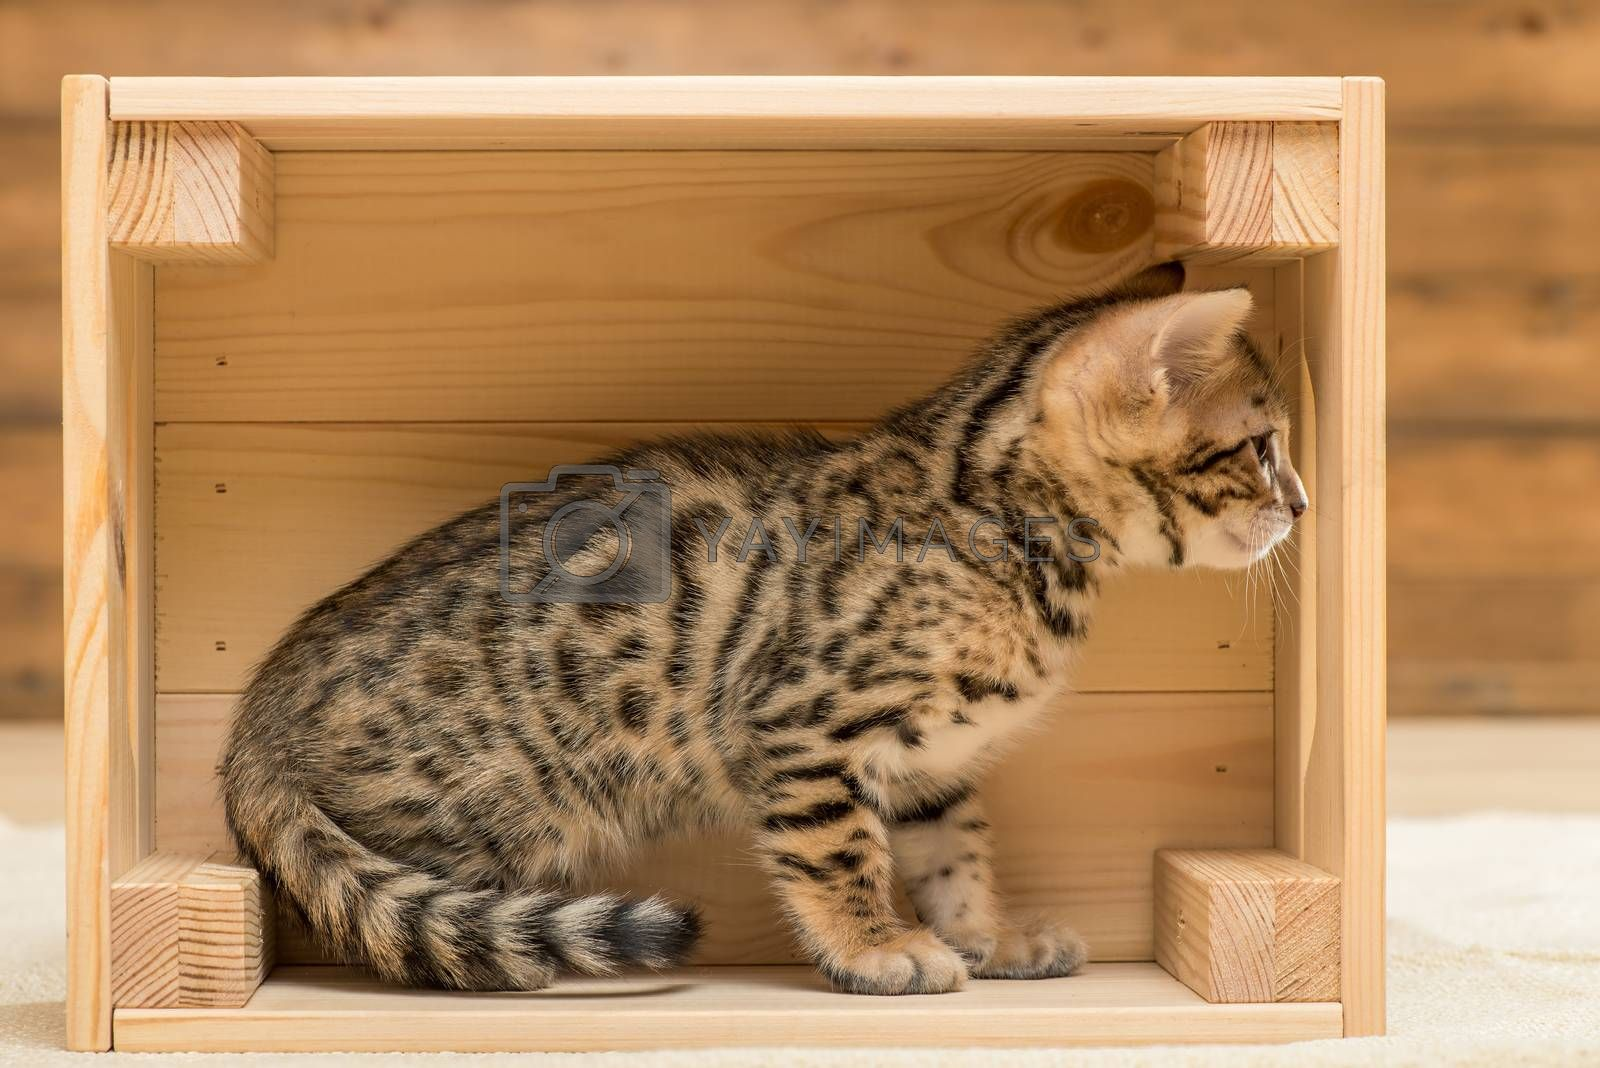 purebred bengal little kitten playing in a wooden box, closeup p by Labunskiy K.